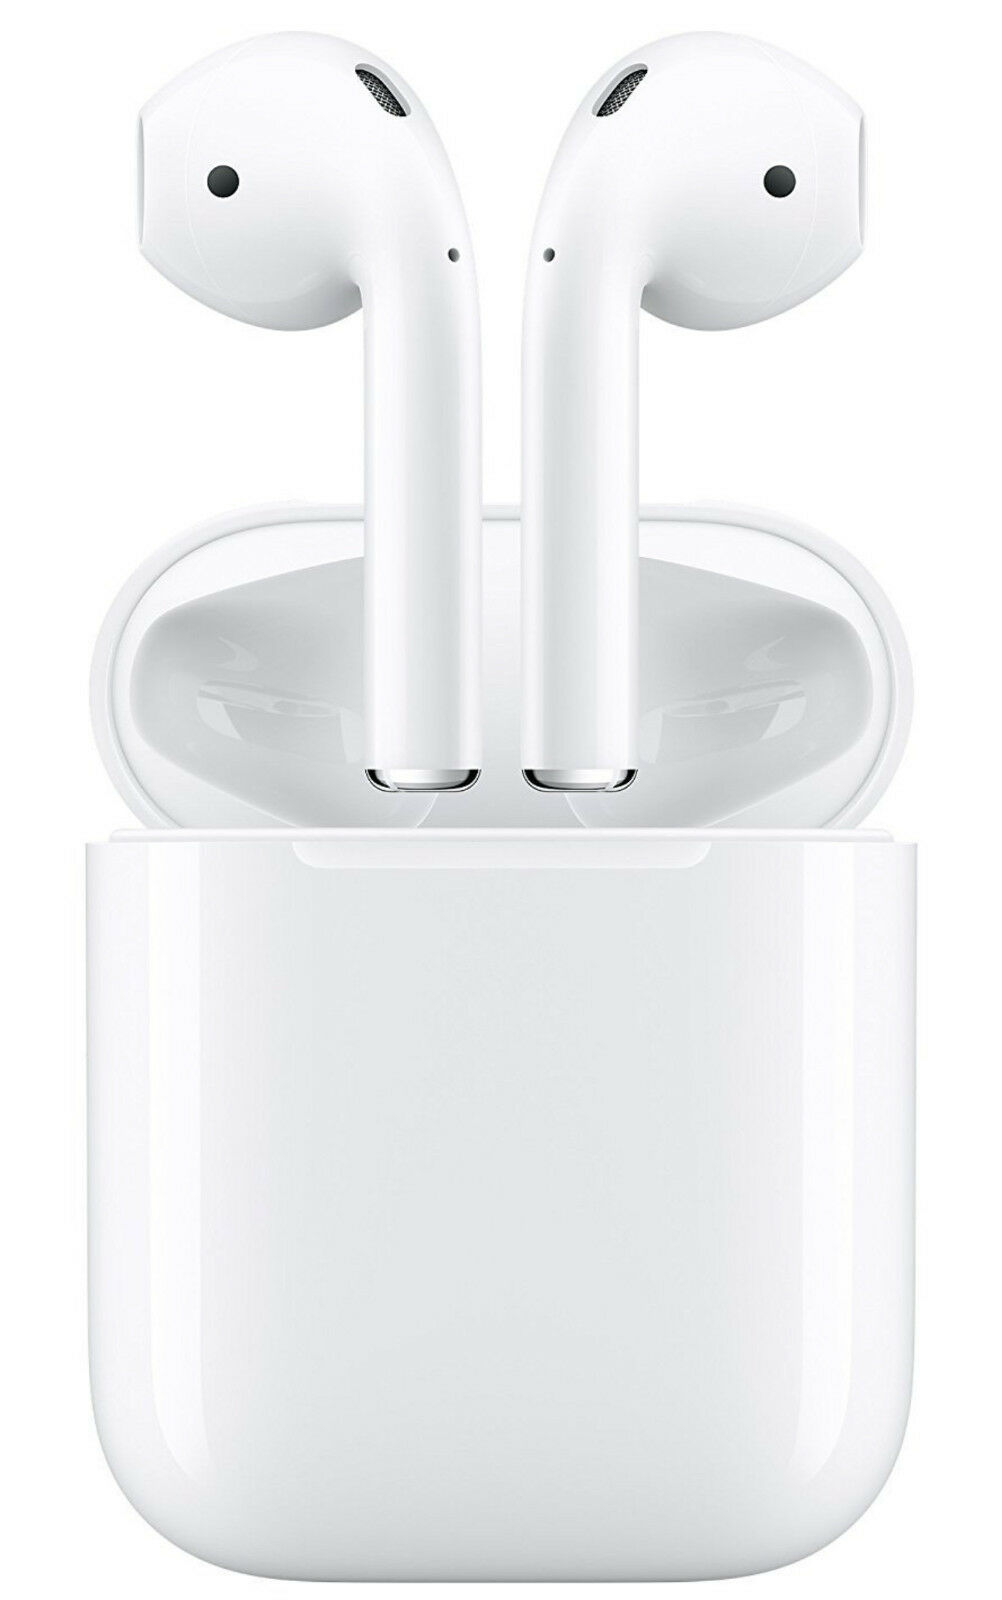 New Apple AirPods – White MMEF2AM/A